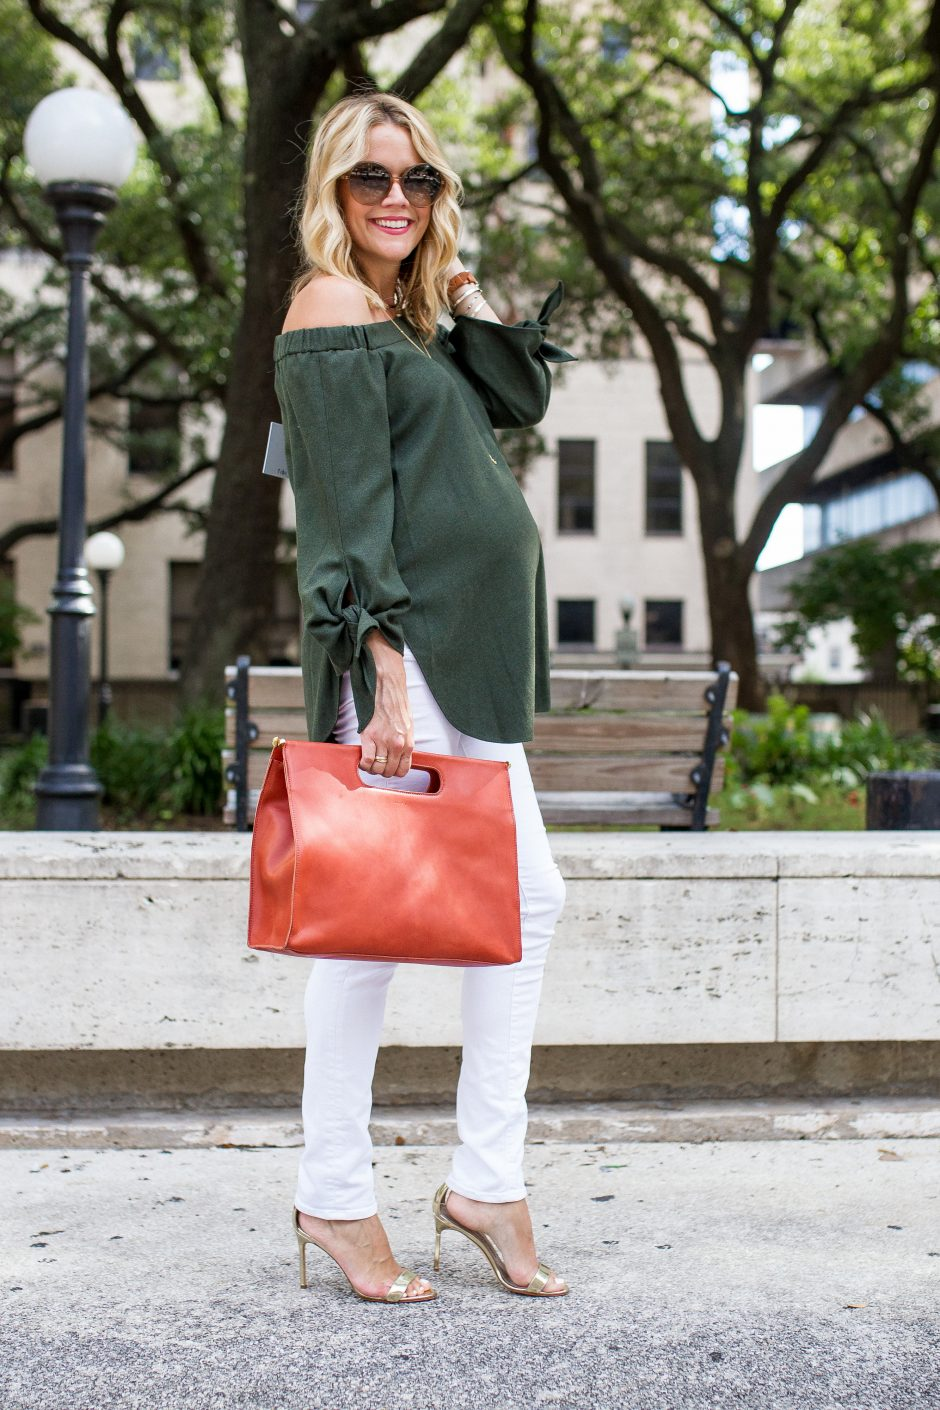 View More Clare V bag google images: http://traciling.pass.us/lyndseyblog2